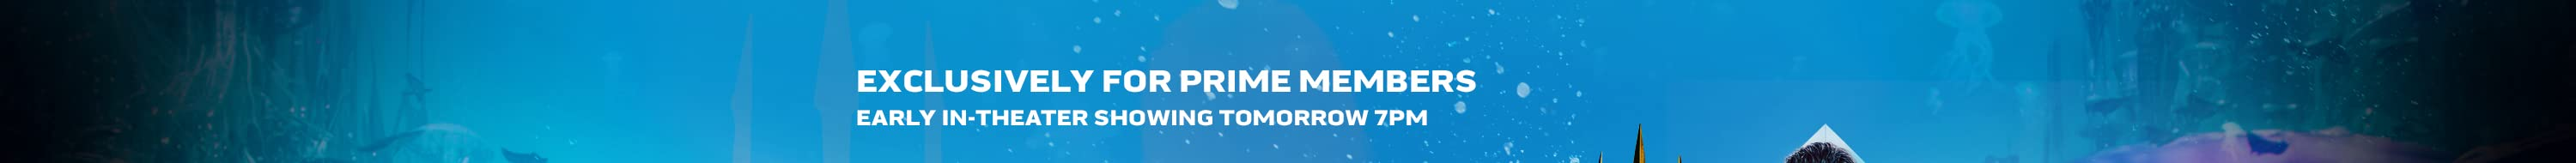 Exclusively for prime members. early in-theater showing, December 15th, 7pm.